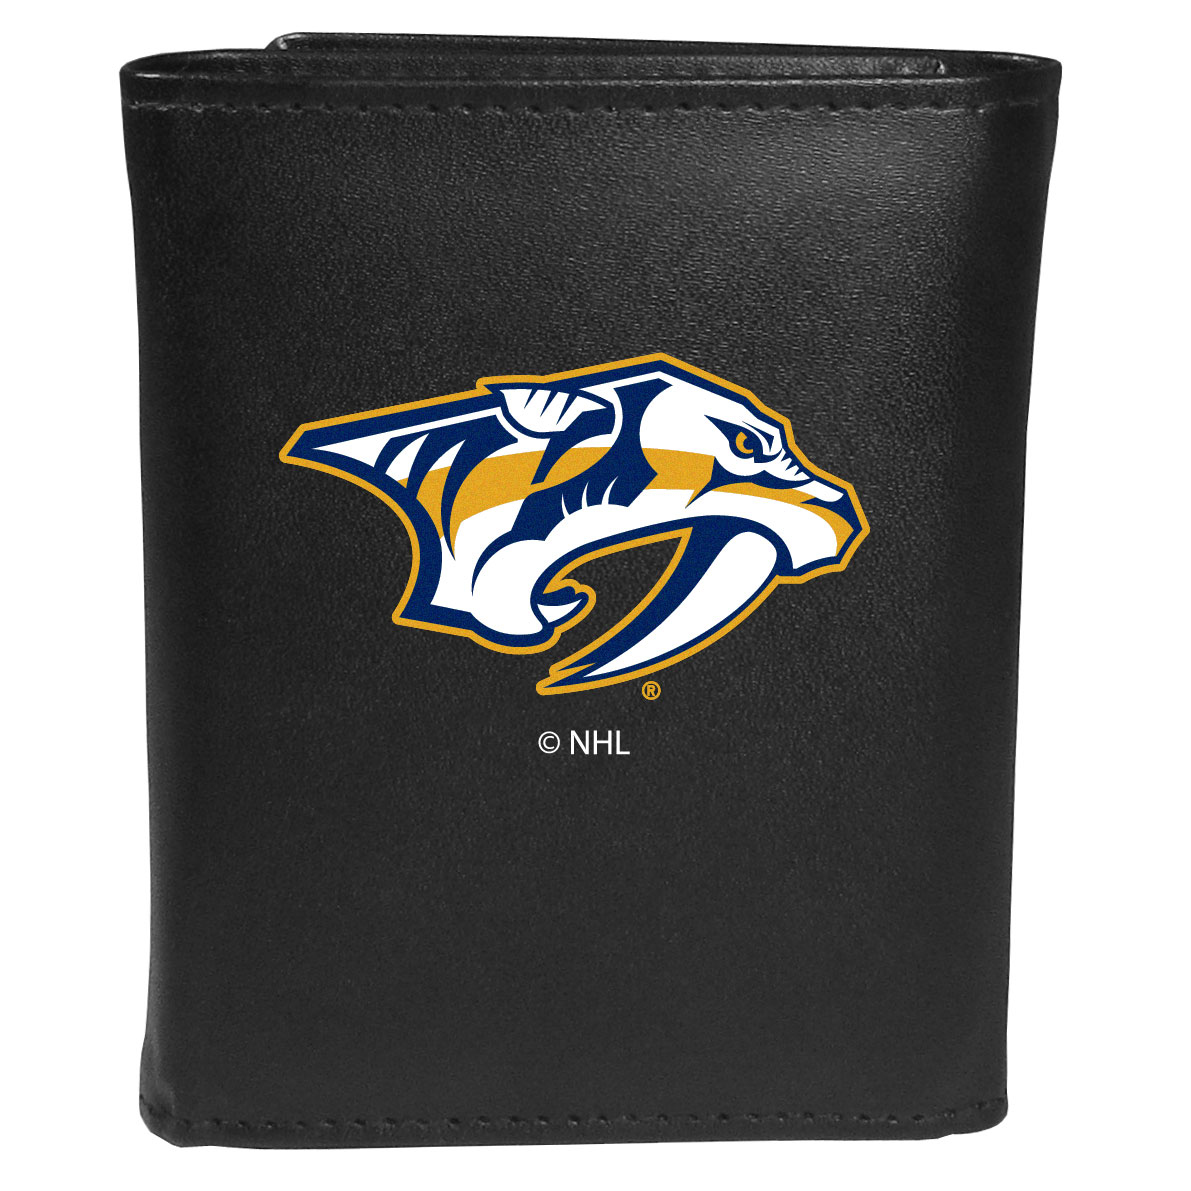 Nashville Predators® Leather Tri-fold Wallet, Large Logo - Our classic fine leather tri-fold wallet is meticulously crafted with genuine leather that will age beautifully so you will have a quality wallet for years to come. This is fan apparel at its finest. The wallet is packed with organizational  features; lots of credit card slots, large billfold pocket, and a window ID slot. The front of the wallet features an extra large Nashville Predators® printed logo.